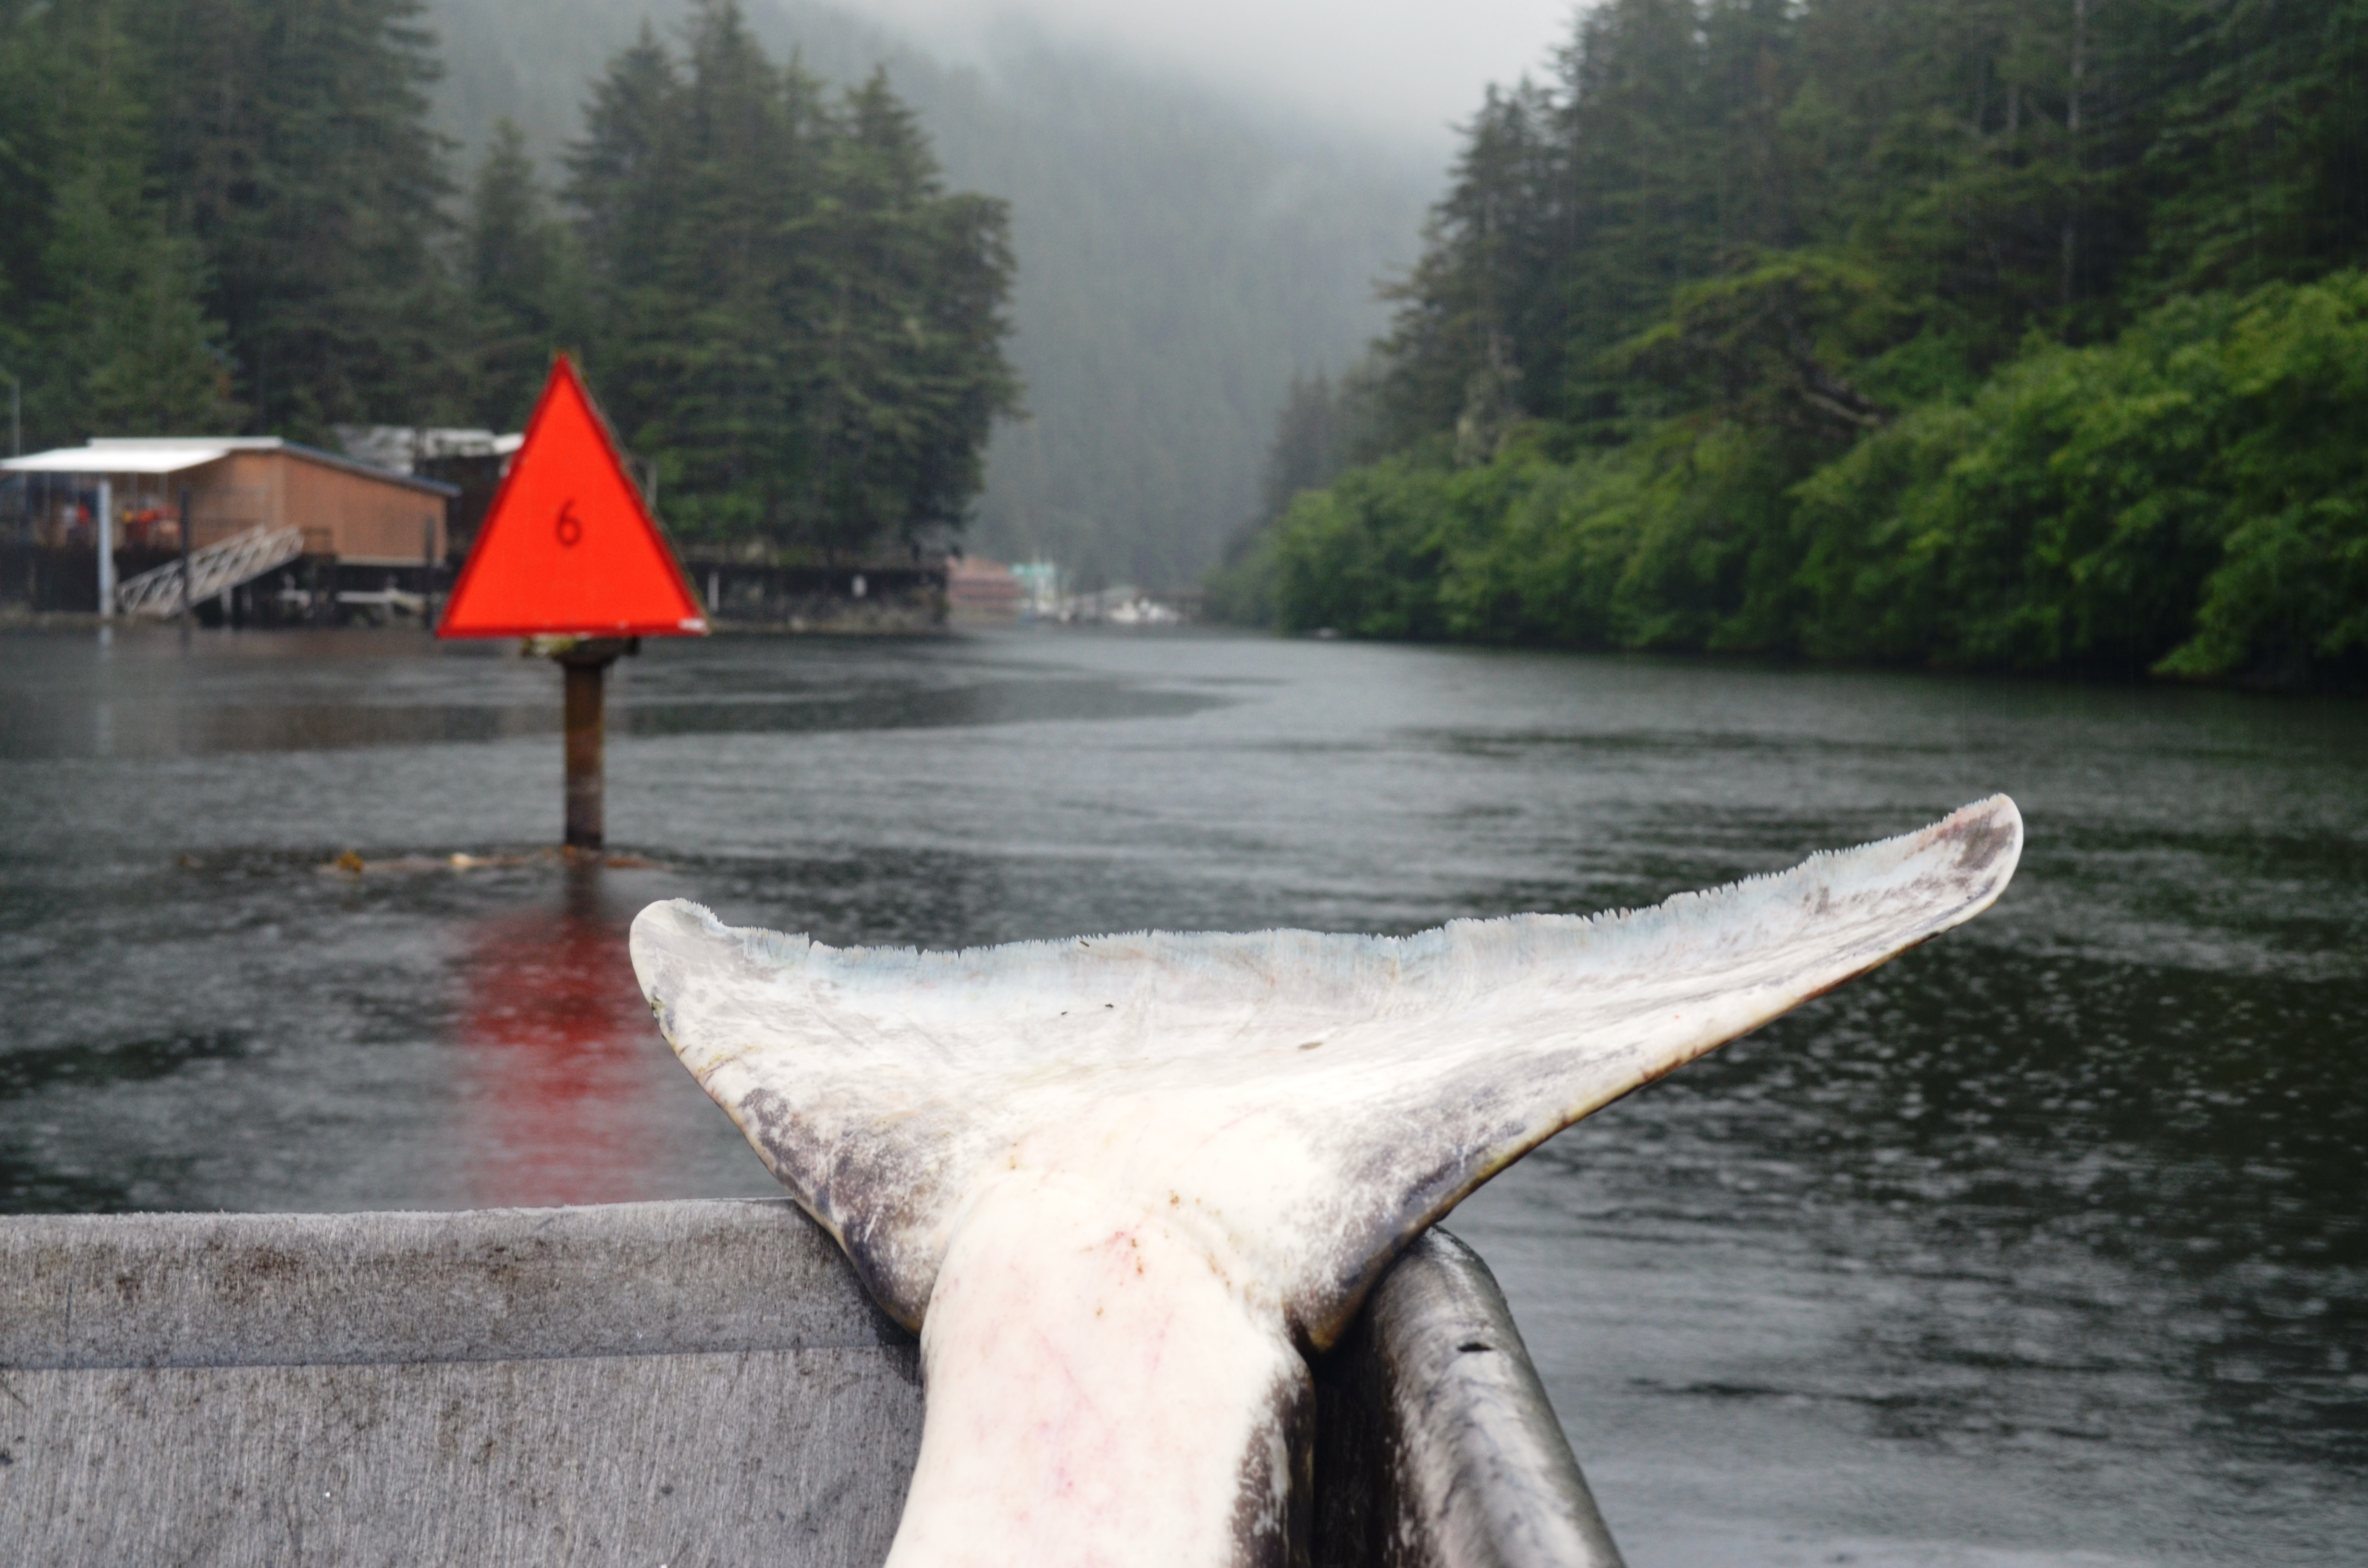 Idyllic settings and tales of halibut you'll be proud to tell. Alaska's Tanaku Lodge offers amazing fishing, great lodging and fantastic meals. Daily rain gear is included in the package.